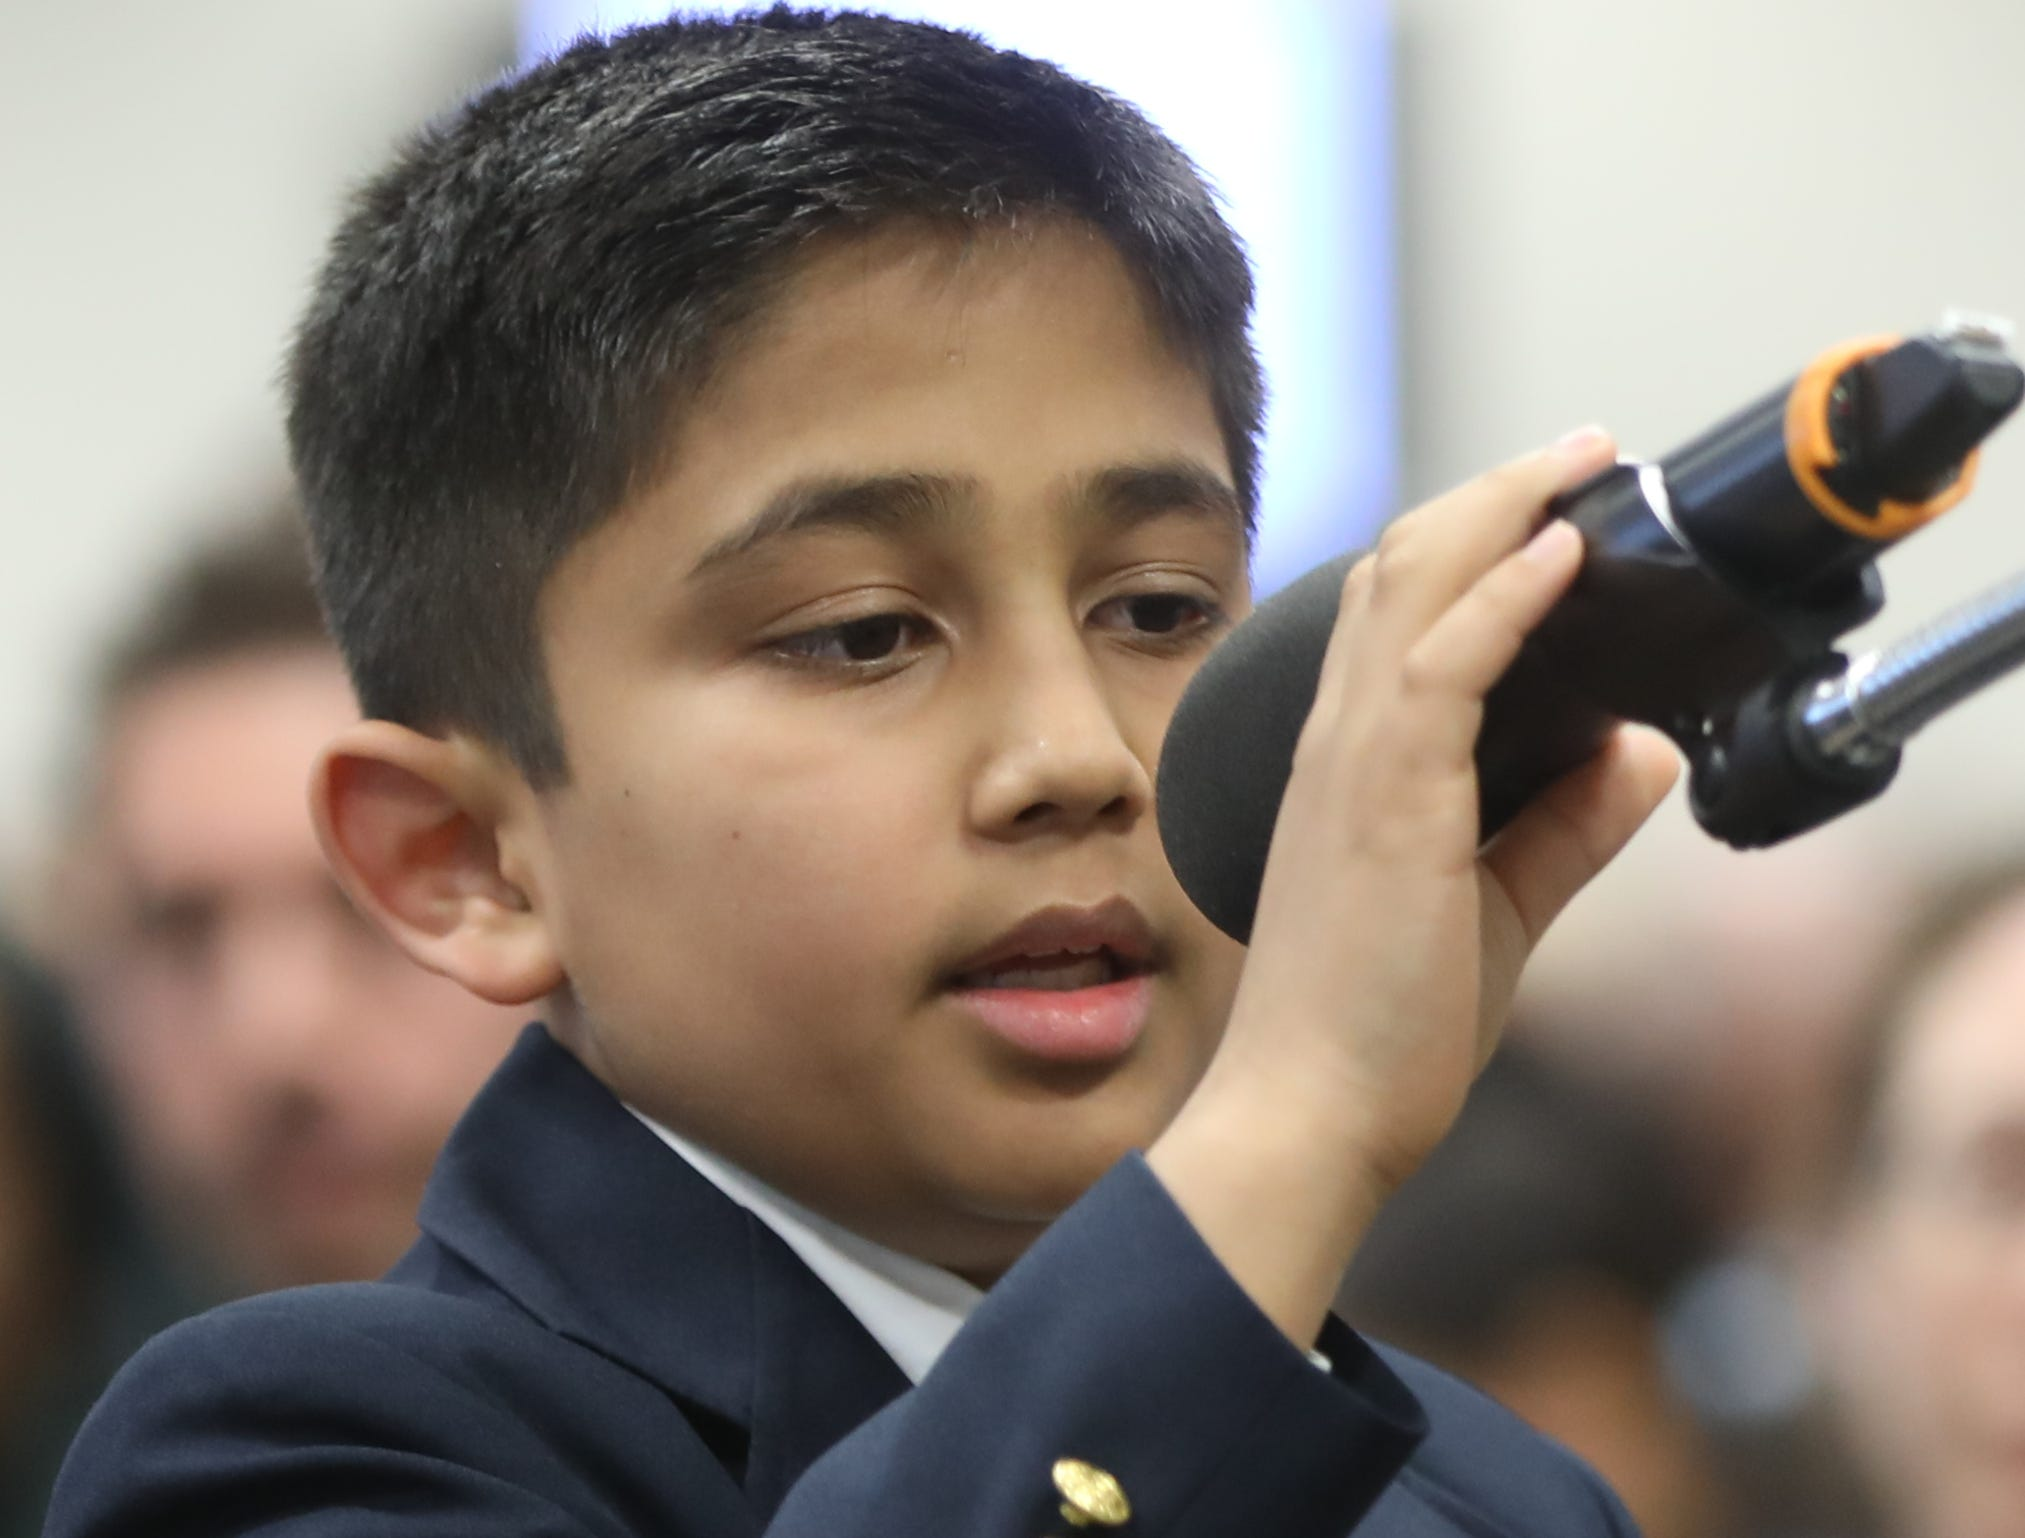 Shlok Jhaveri, of Tenafly, competes in the first round of the 2019 North Jersey Spelling Bee, in Paramus. Thursday, March 14, 2019